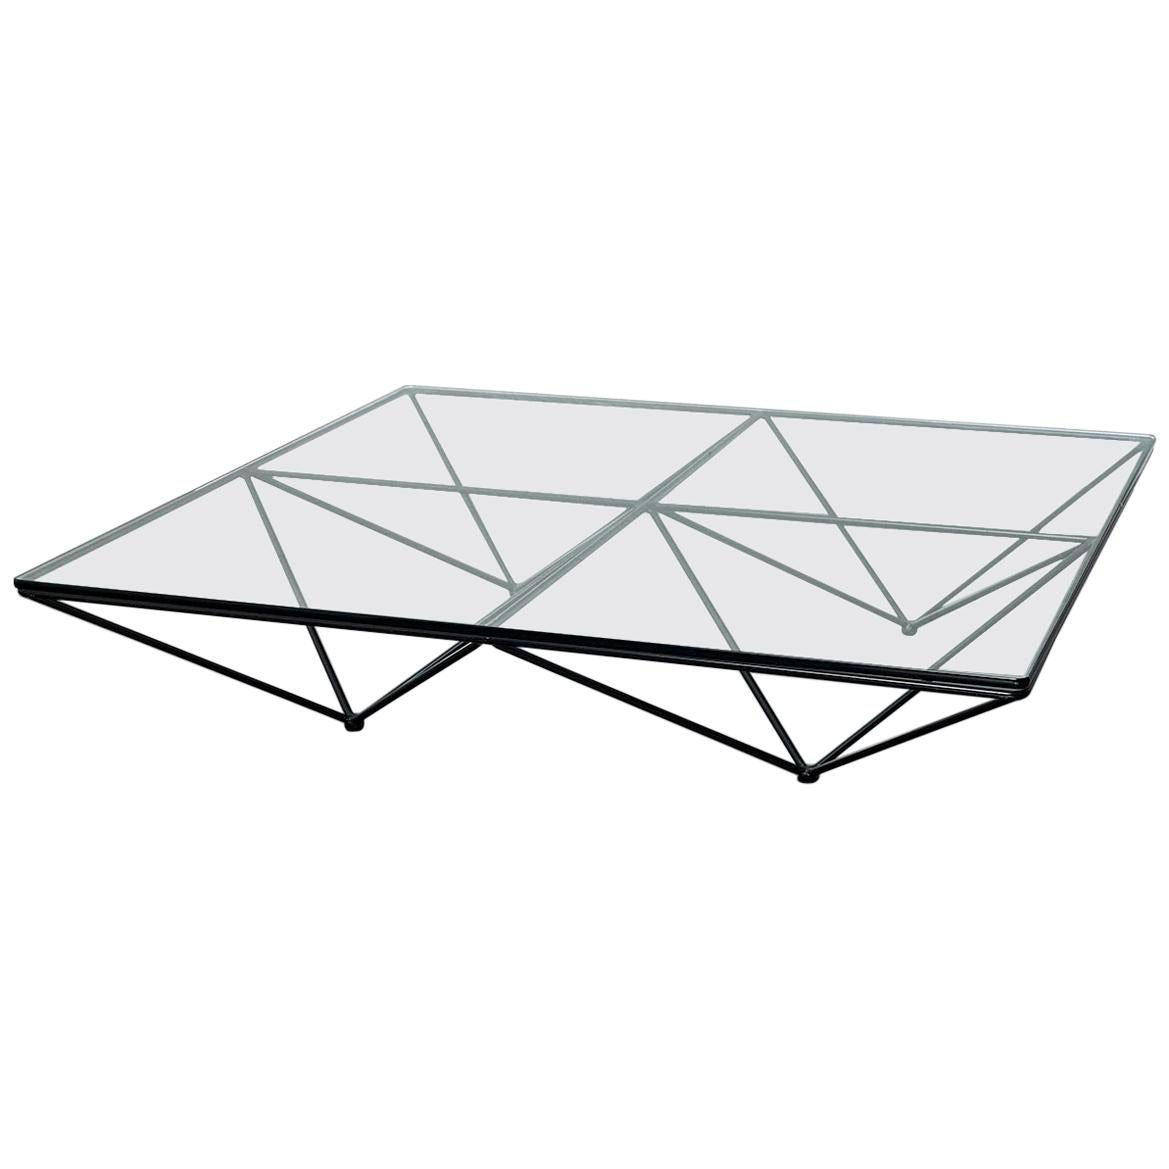 Alanda Coffee Table by Paolo Piva with Square Glass and Metal Structure